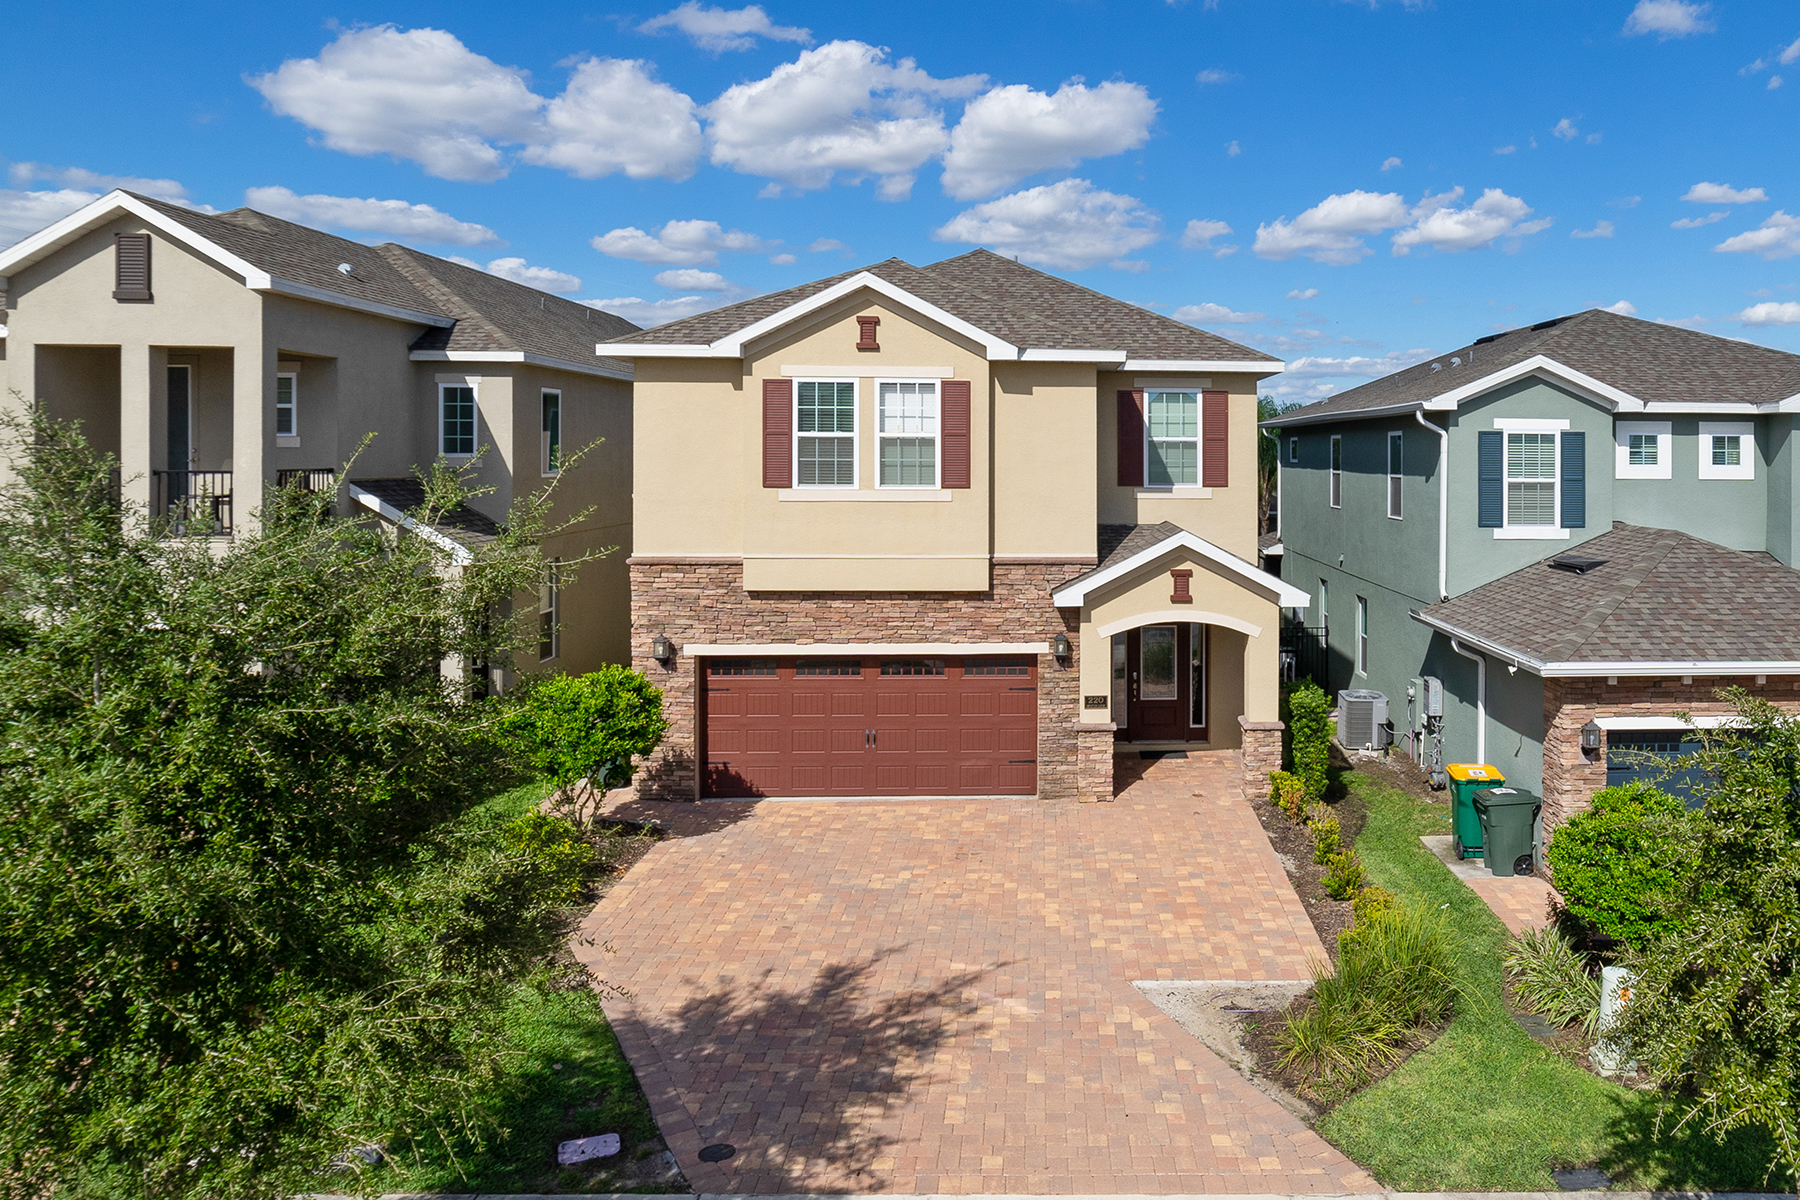 Single Family Homes for Sale at KISSIMMEE-ORLANDO 220 Minton Loop Kissimmee, Florida 34747 United States